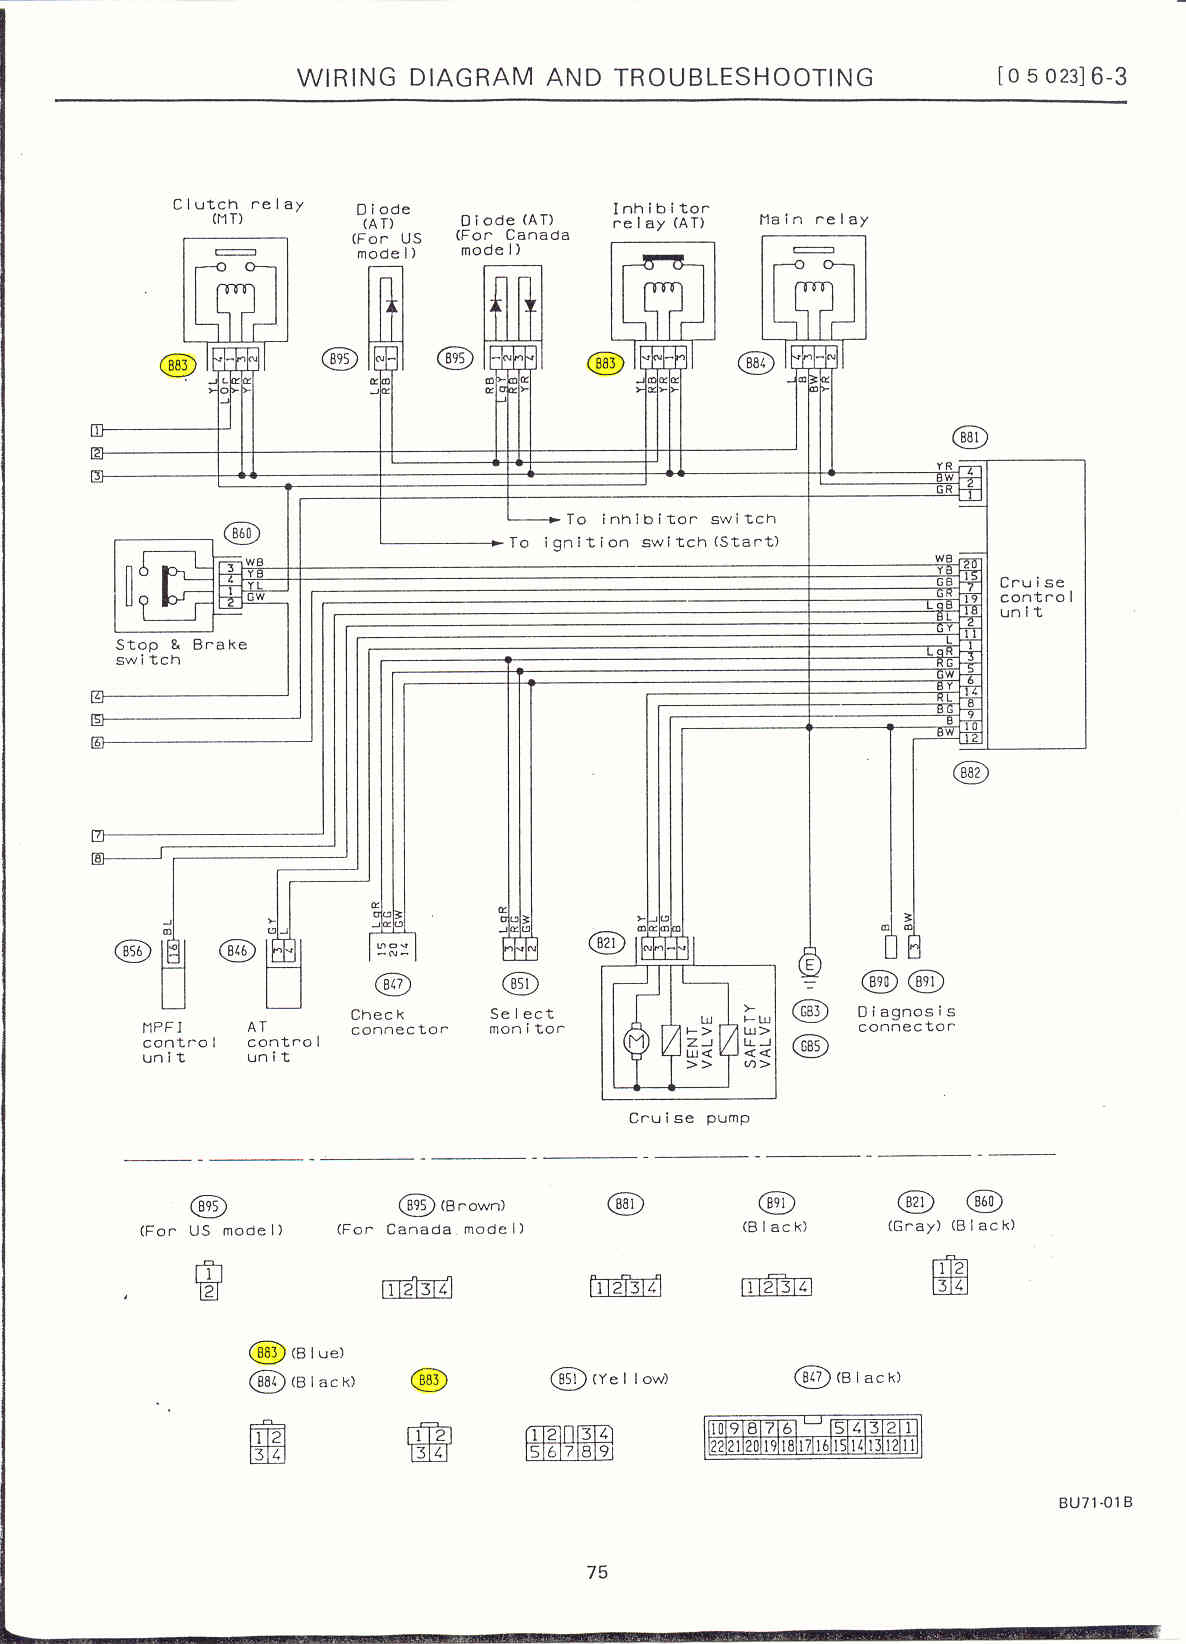 6 3_cruise_control2 93 subaru legacy wiring diagram 1995 subaru legacy wiring diagram 1996 Subaru Impreza at bayanpartner.co